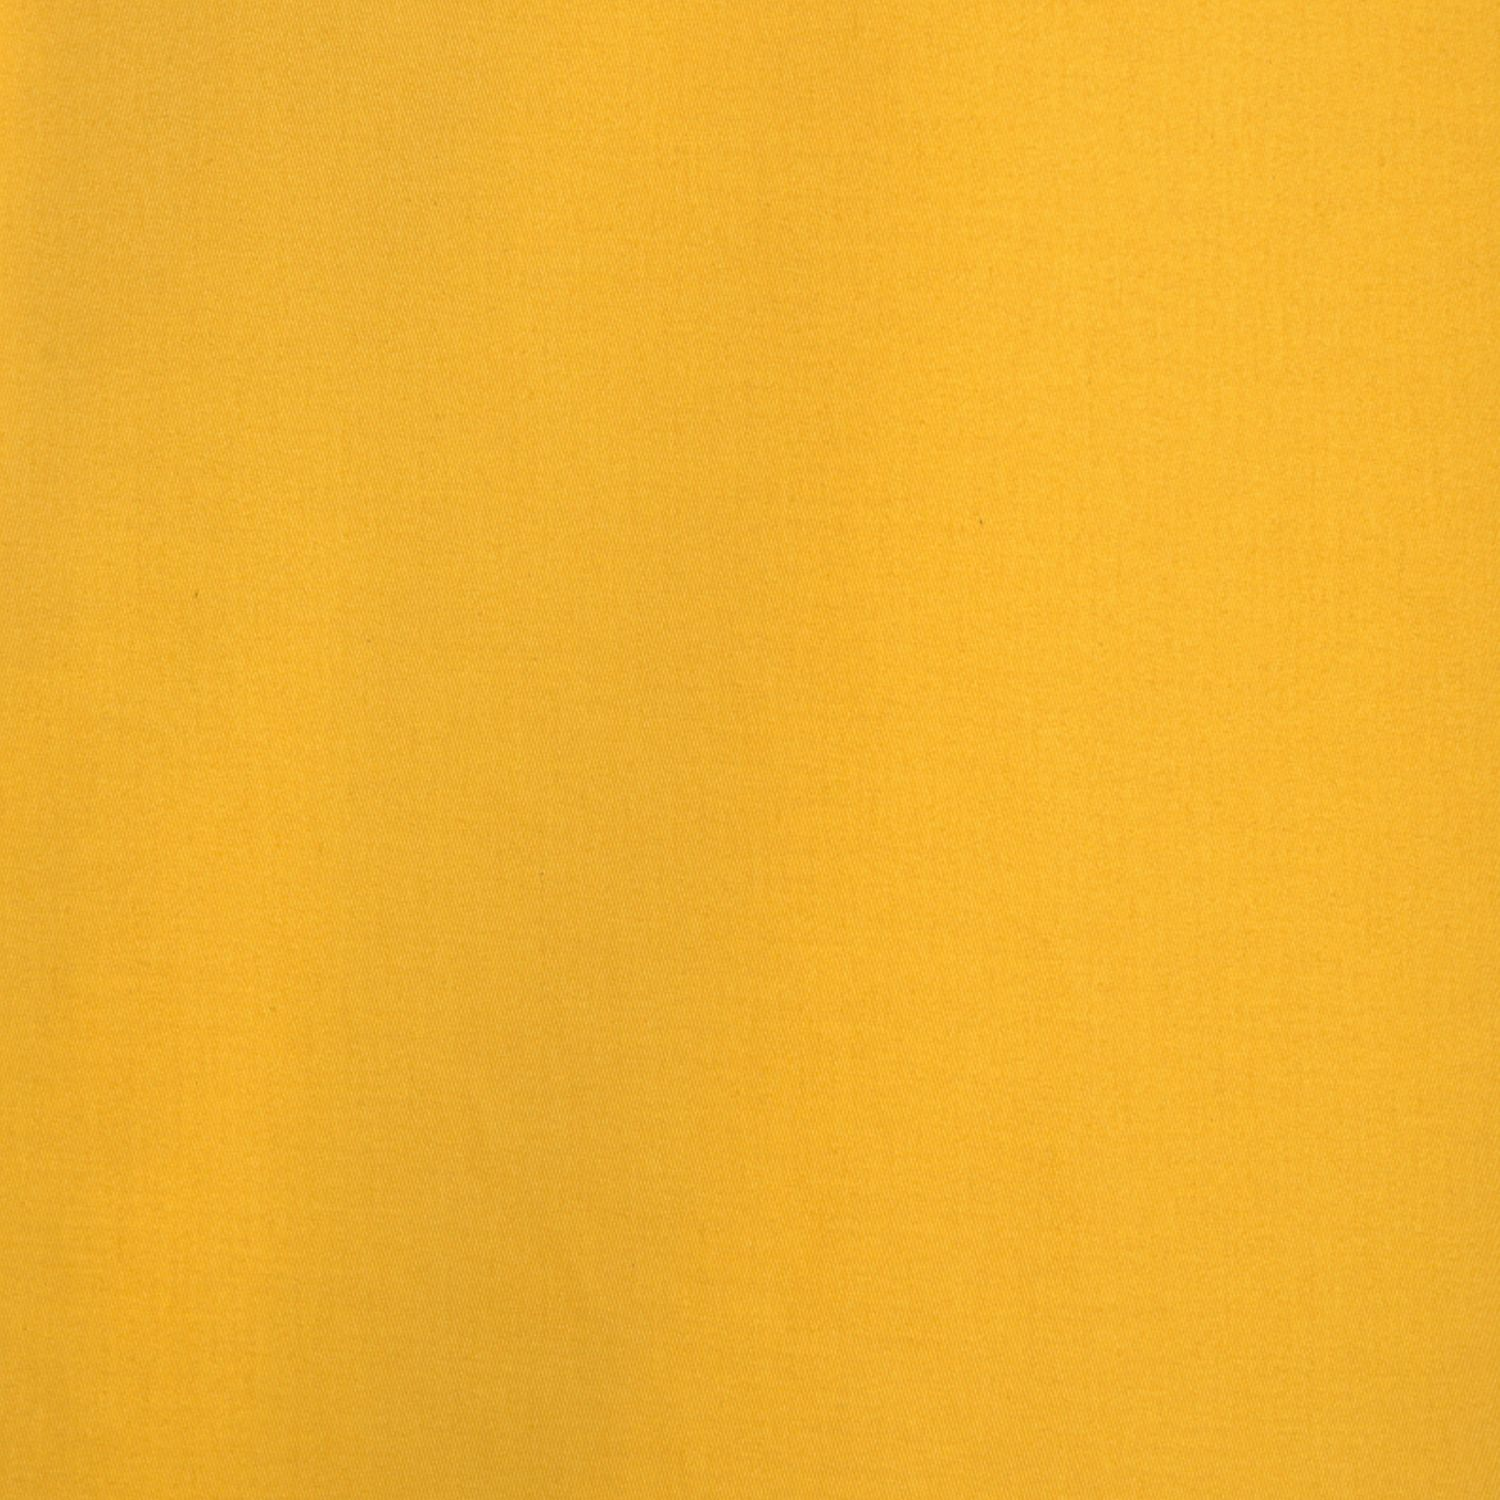 Mustard Yellow Cotton Twill Swatch